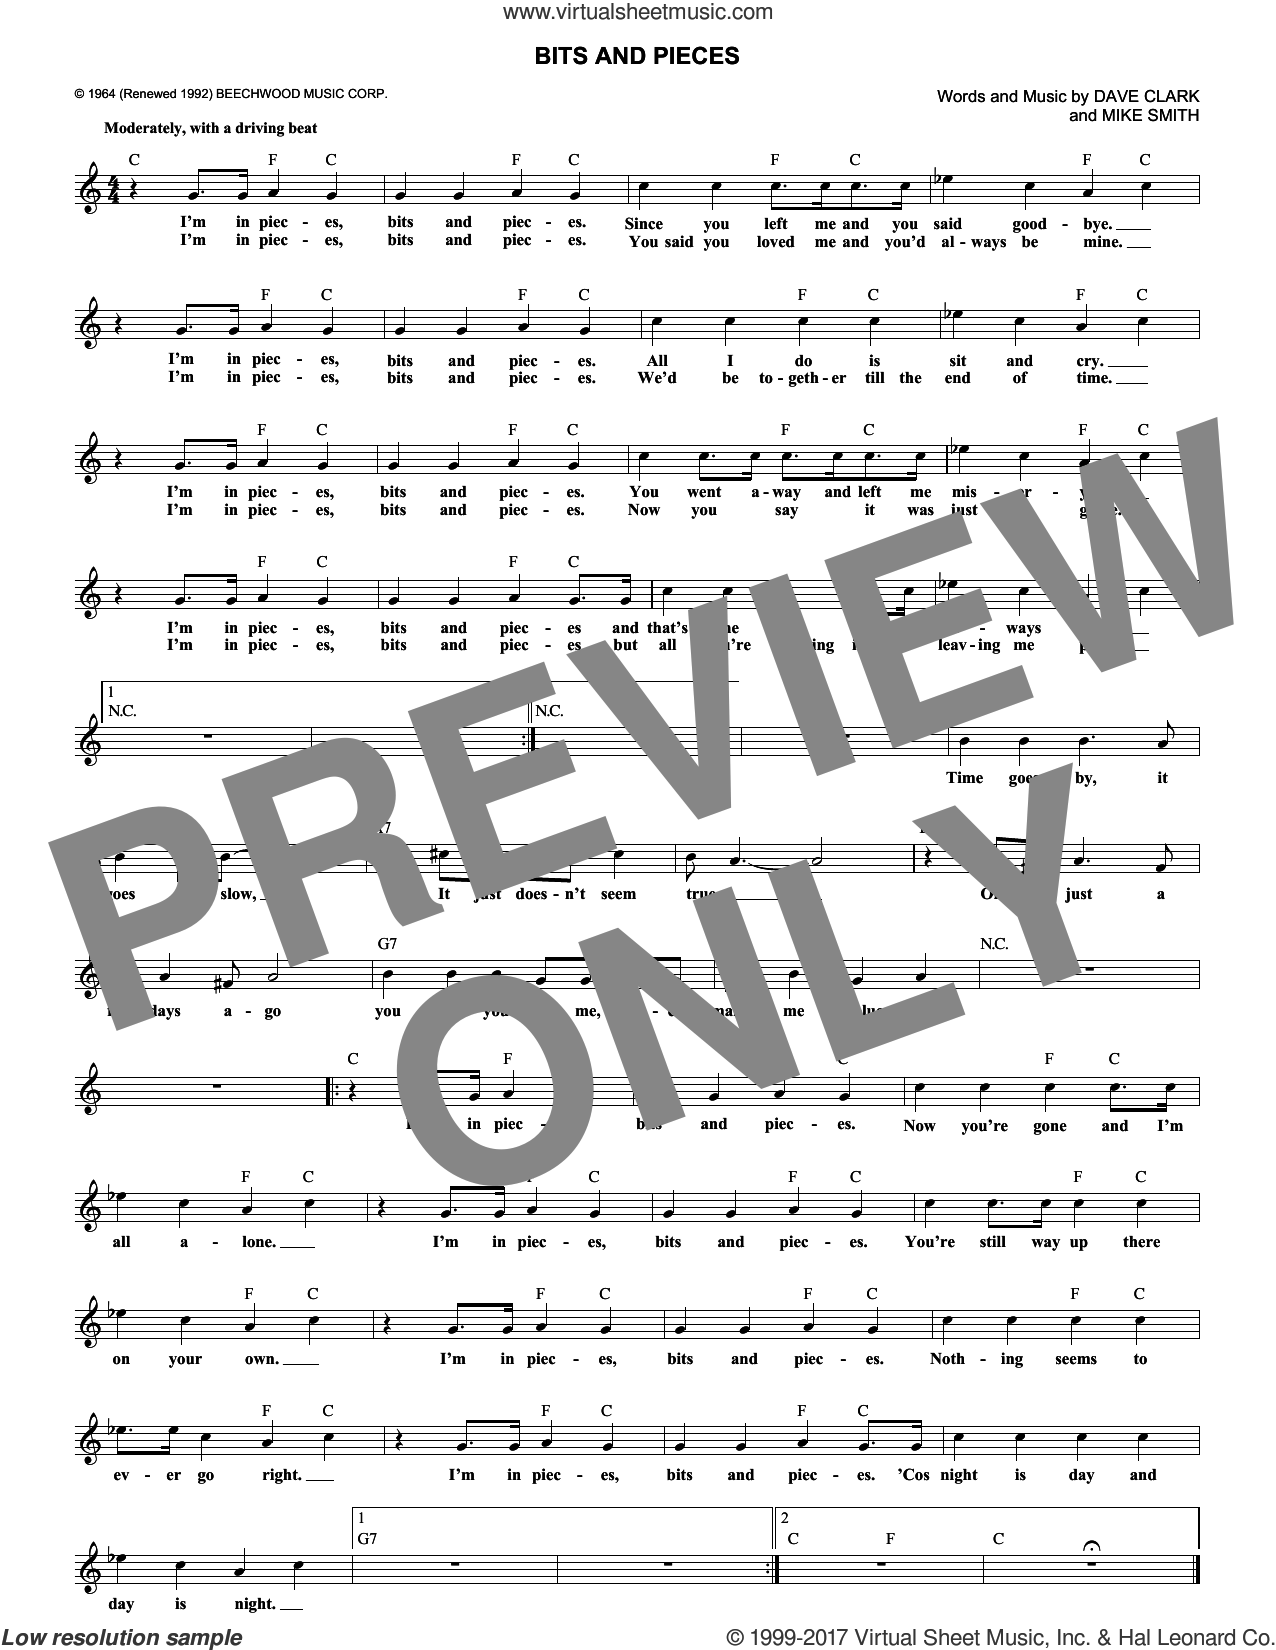 Bits And Pieces sheet music for voice and other instruments (fake book) by Dave Clark Five, Dave Clark and Michael W. Smith, intermediate skill level